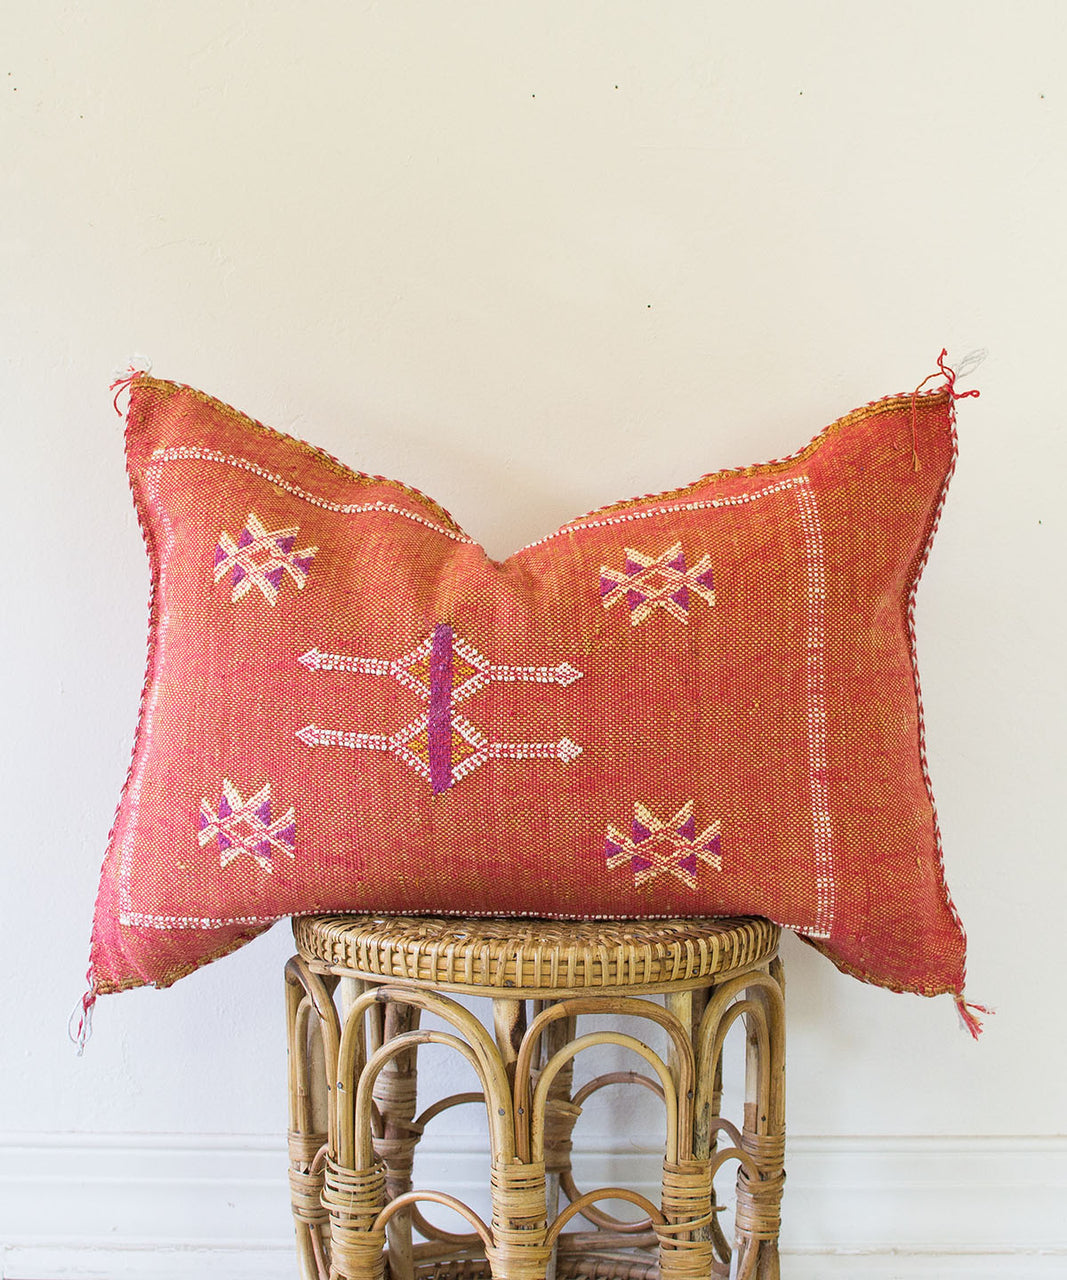 Vintage Red Silk Sabra Pillow II - Sister Golden